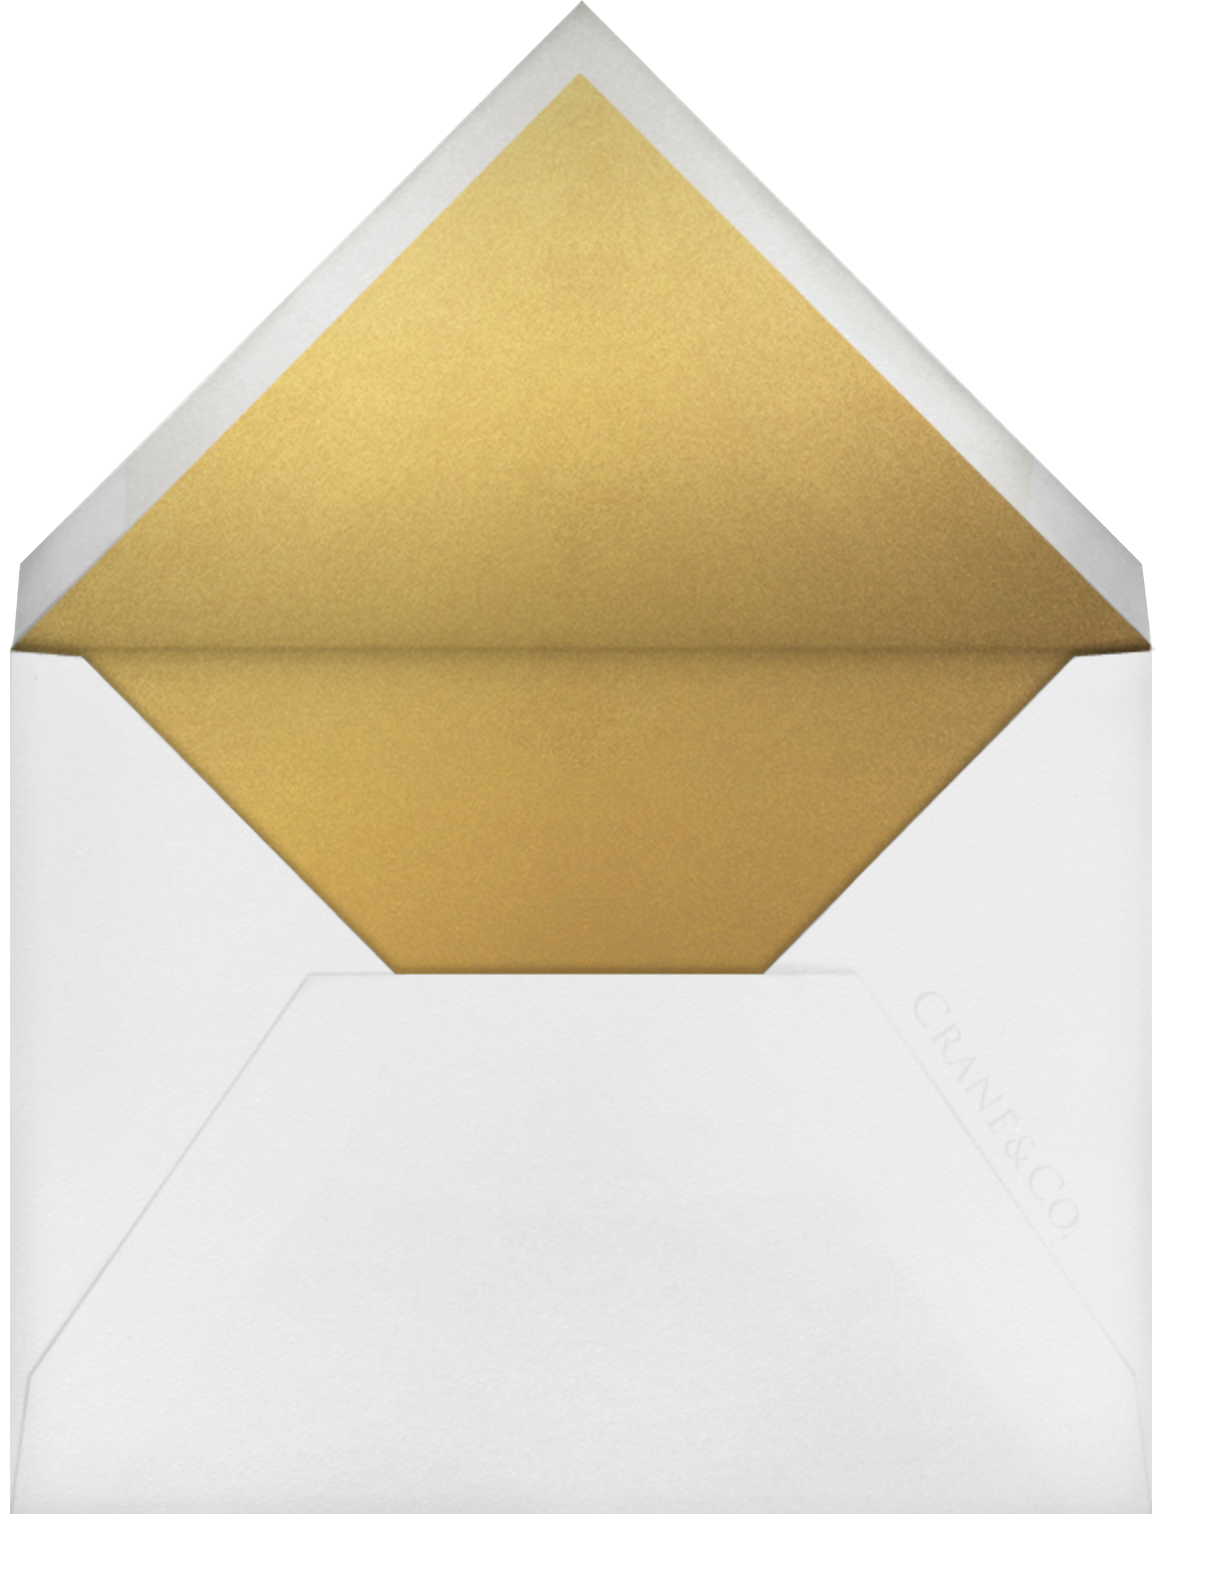 Vineyard I (Save the Date) - Gold - Paperless Post - Save the date - envelope back